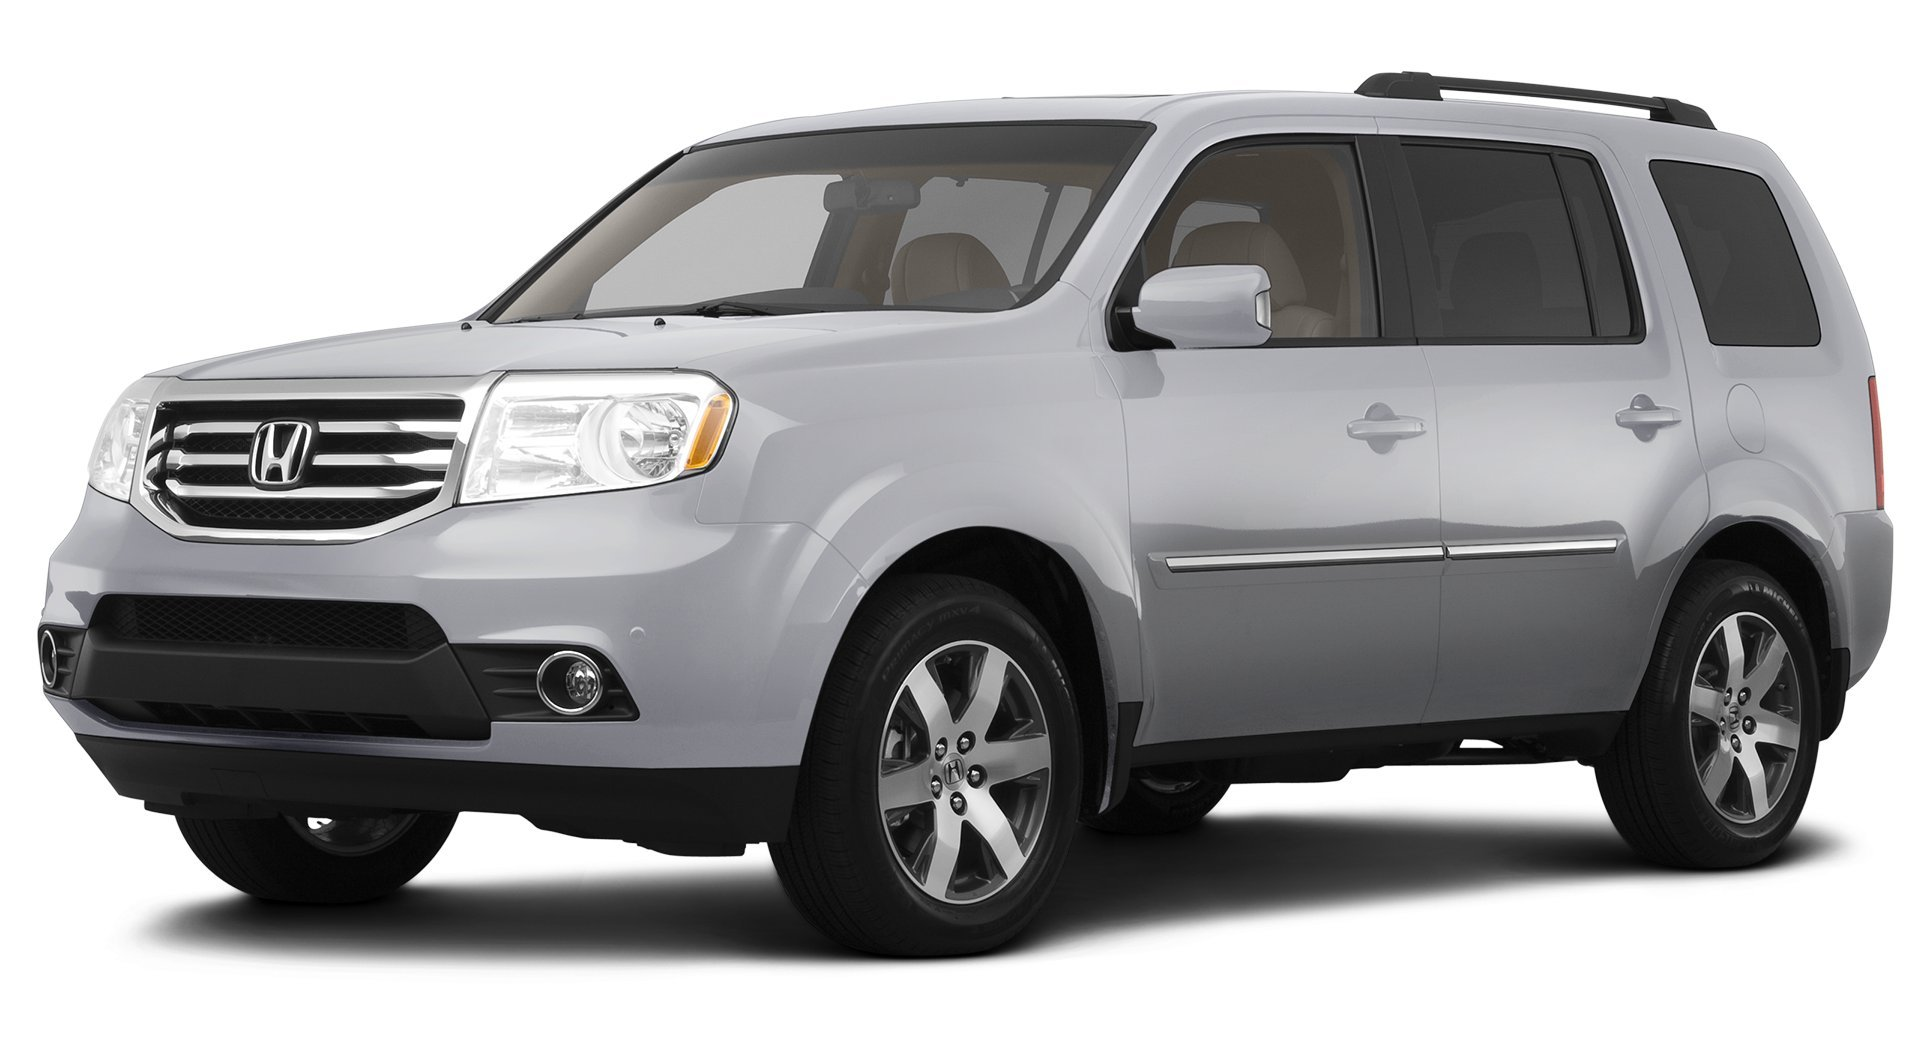 2012 honda pilot reviews images and specs vehicles. Black Bedroom Furniture Sets. Home Design Ideas